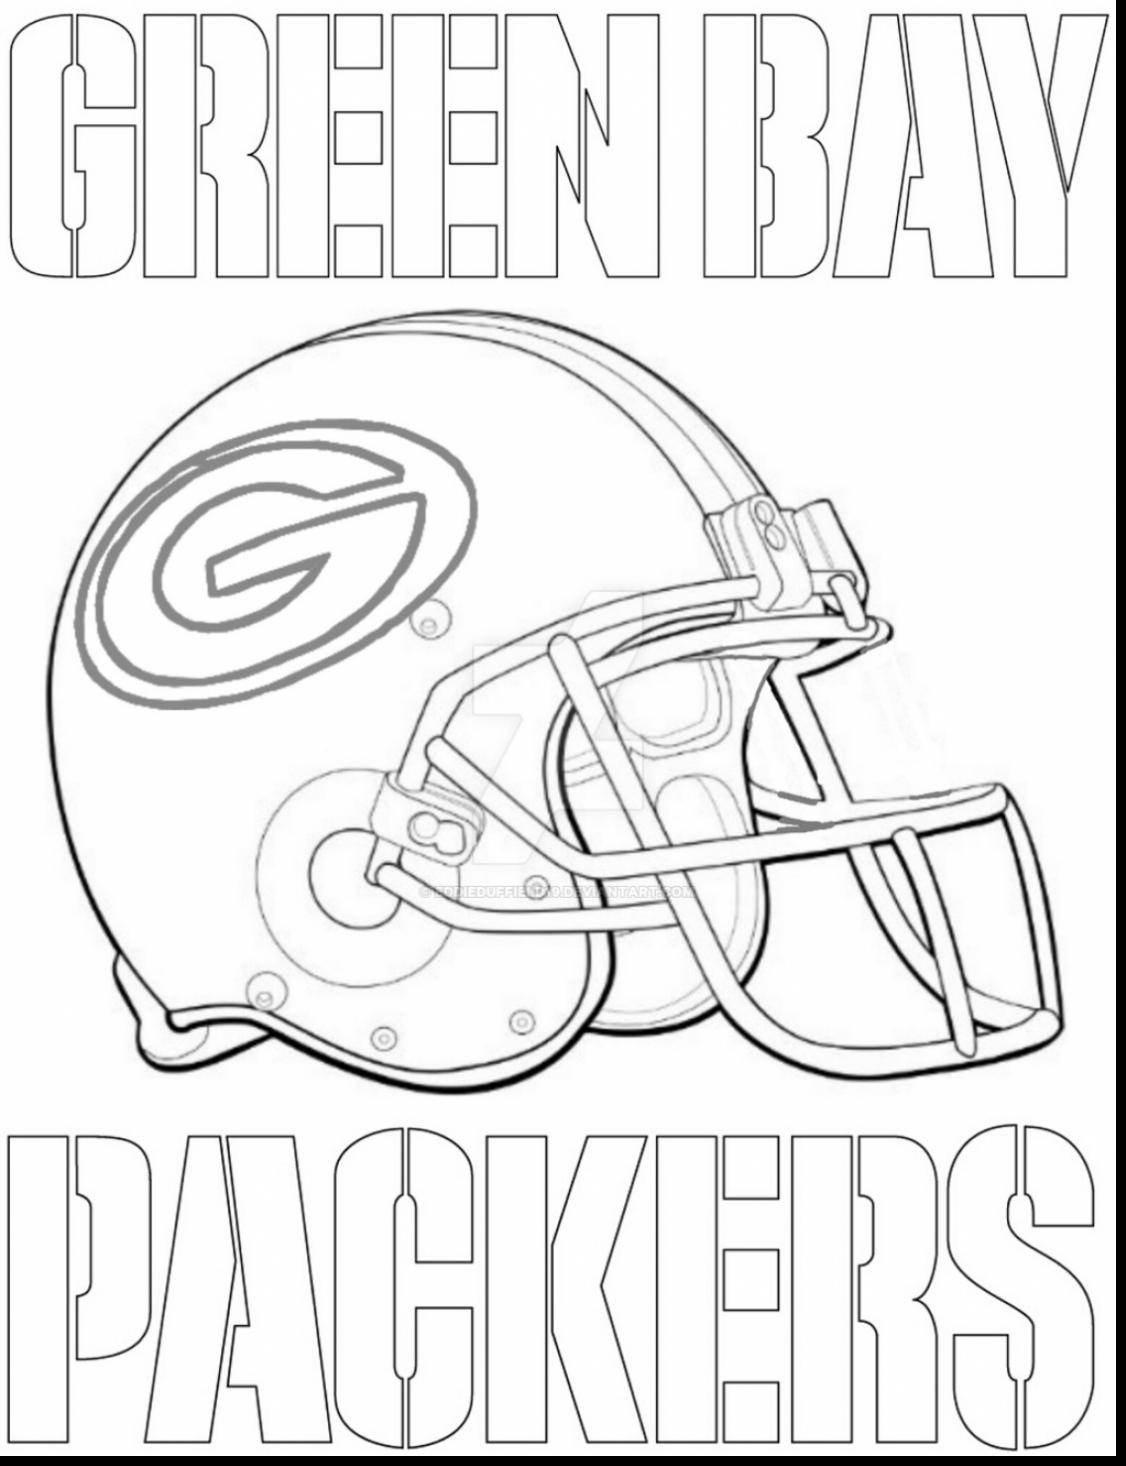 Super Bowl Coloring Pages At Getcolorings